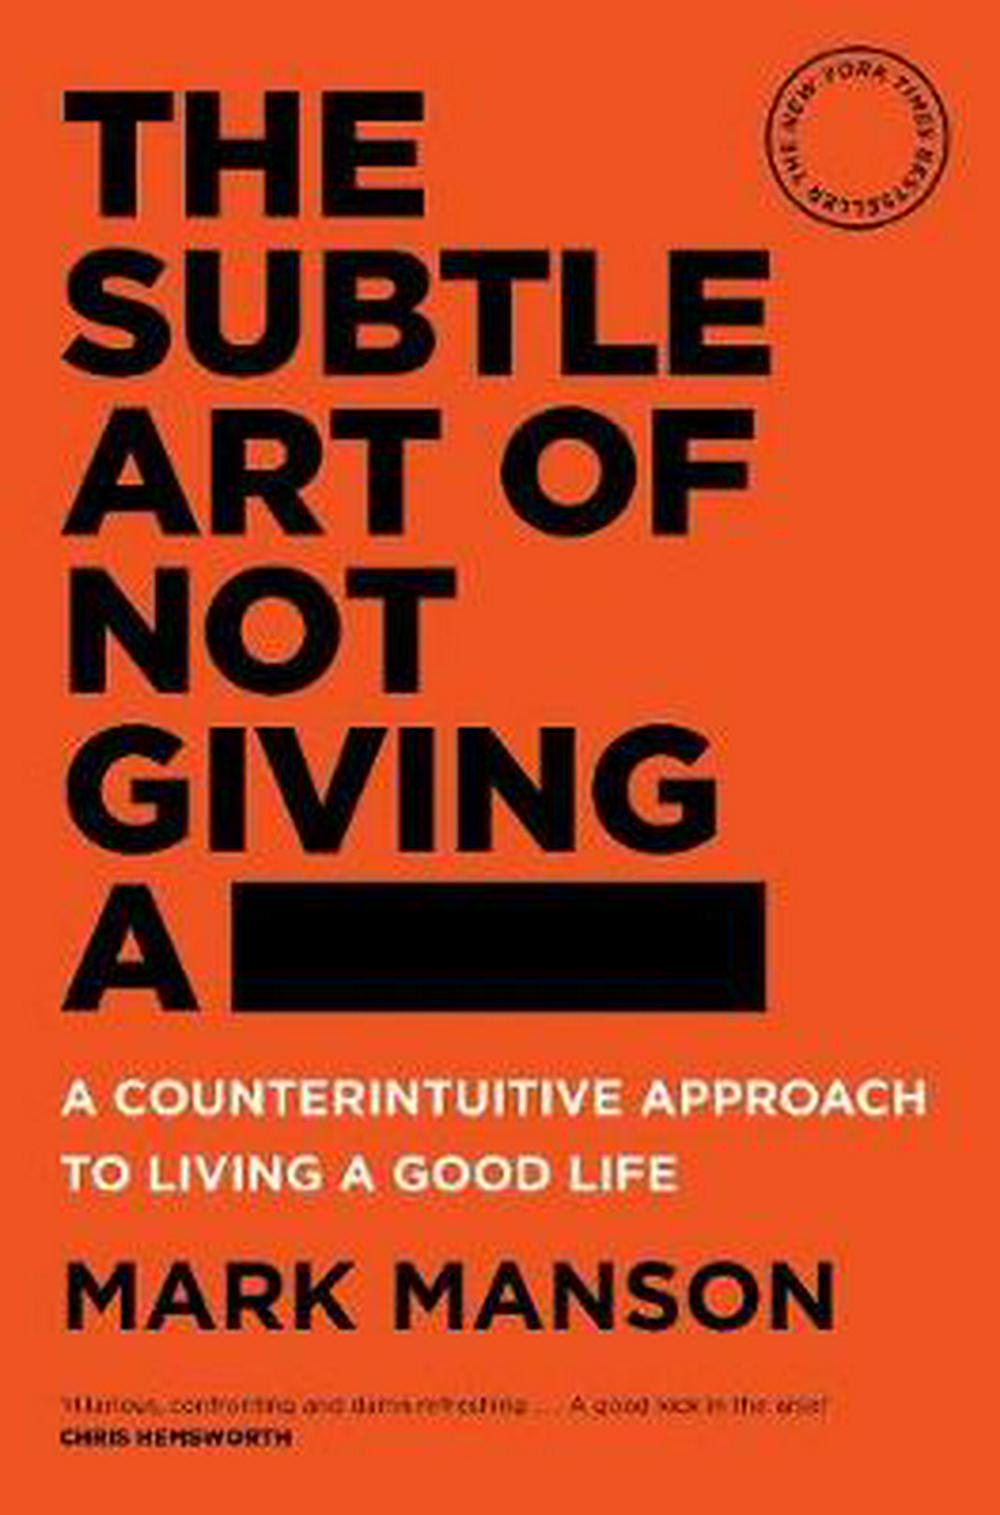 The Subtle Art of Not Giving a -A Counterintuitive Approach to Living a Good Life